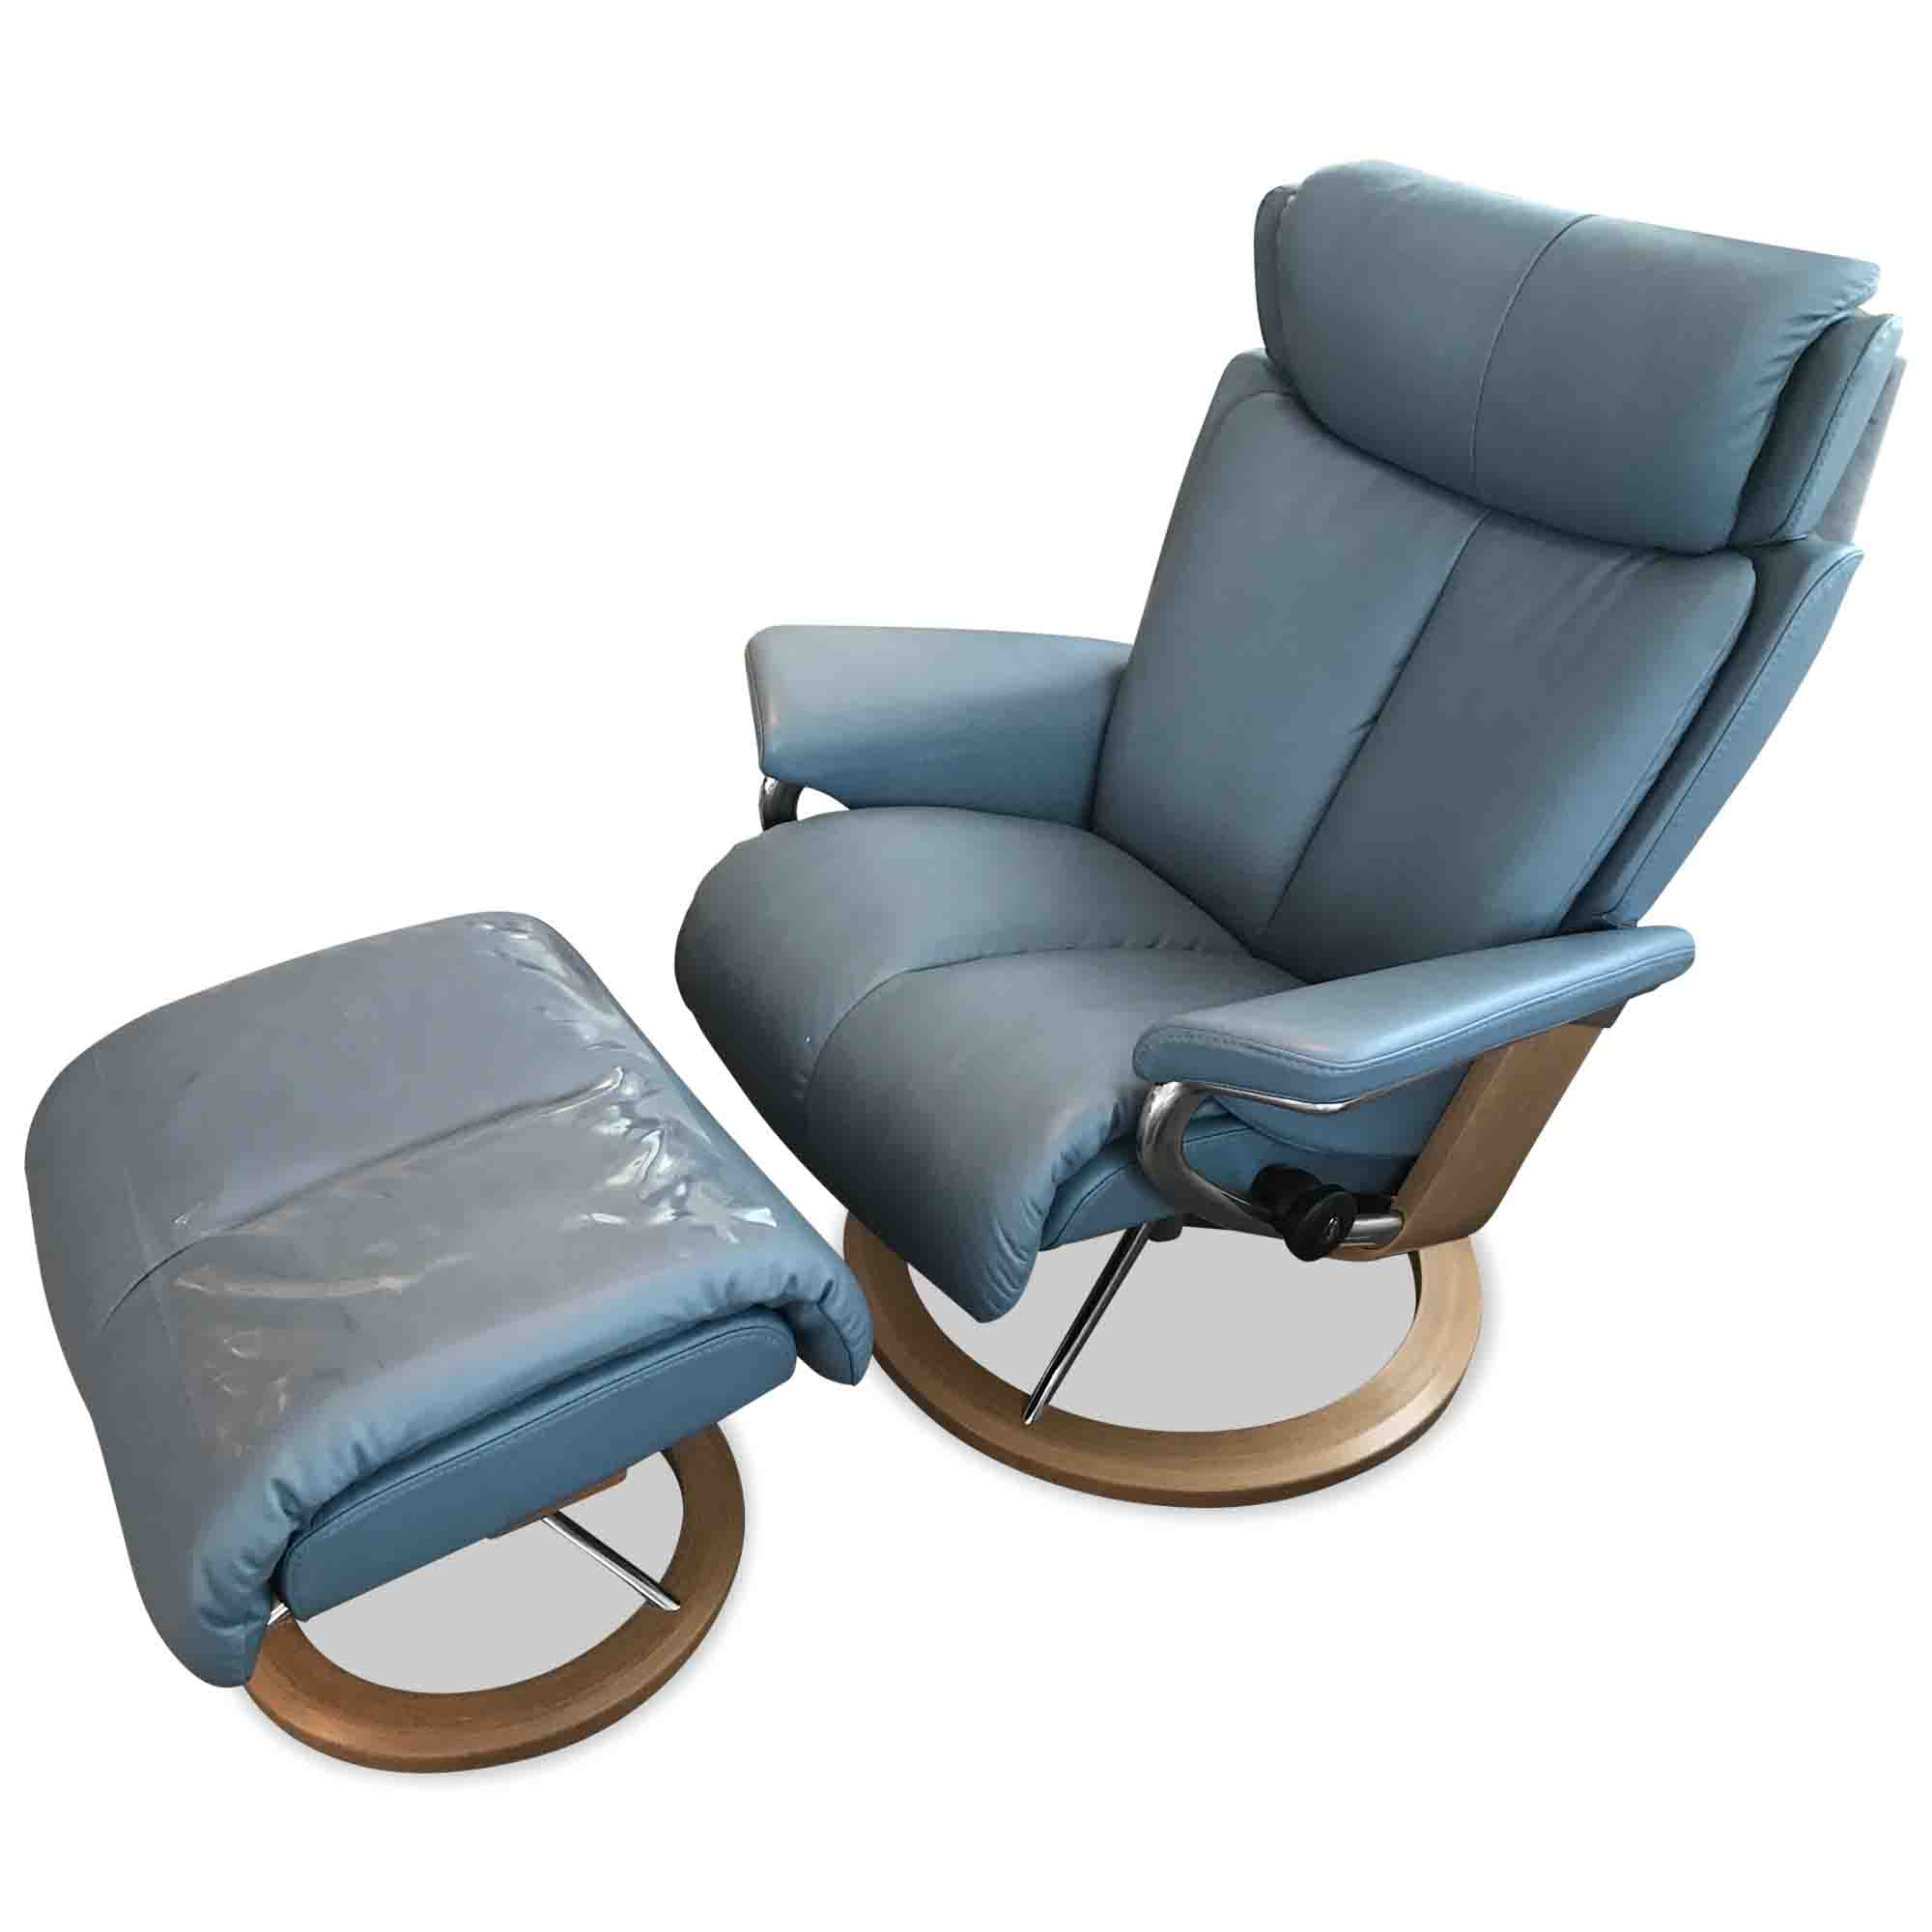 stressless designer sessel magic m signature mit hocker in blau leder holz 4060988003178 ebay. Black Bedroom Furniture Sets. Home Design Ideas